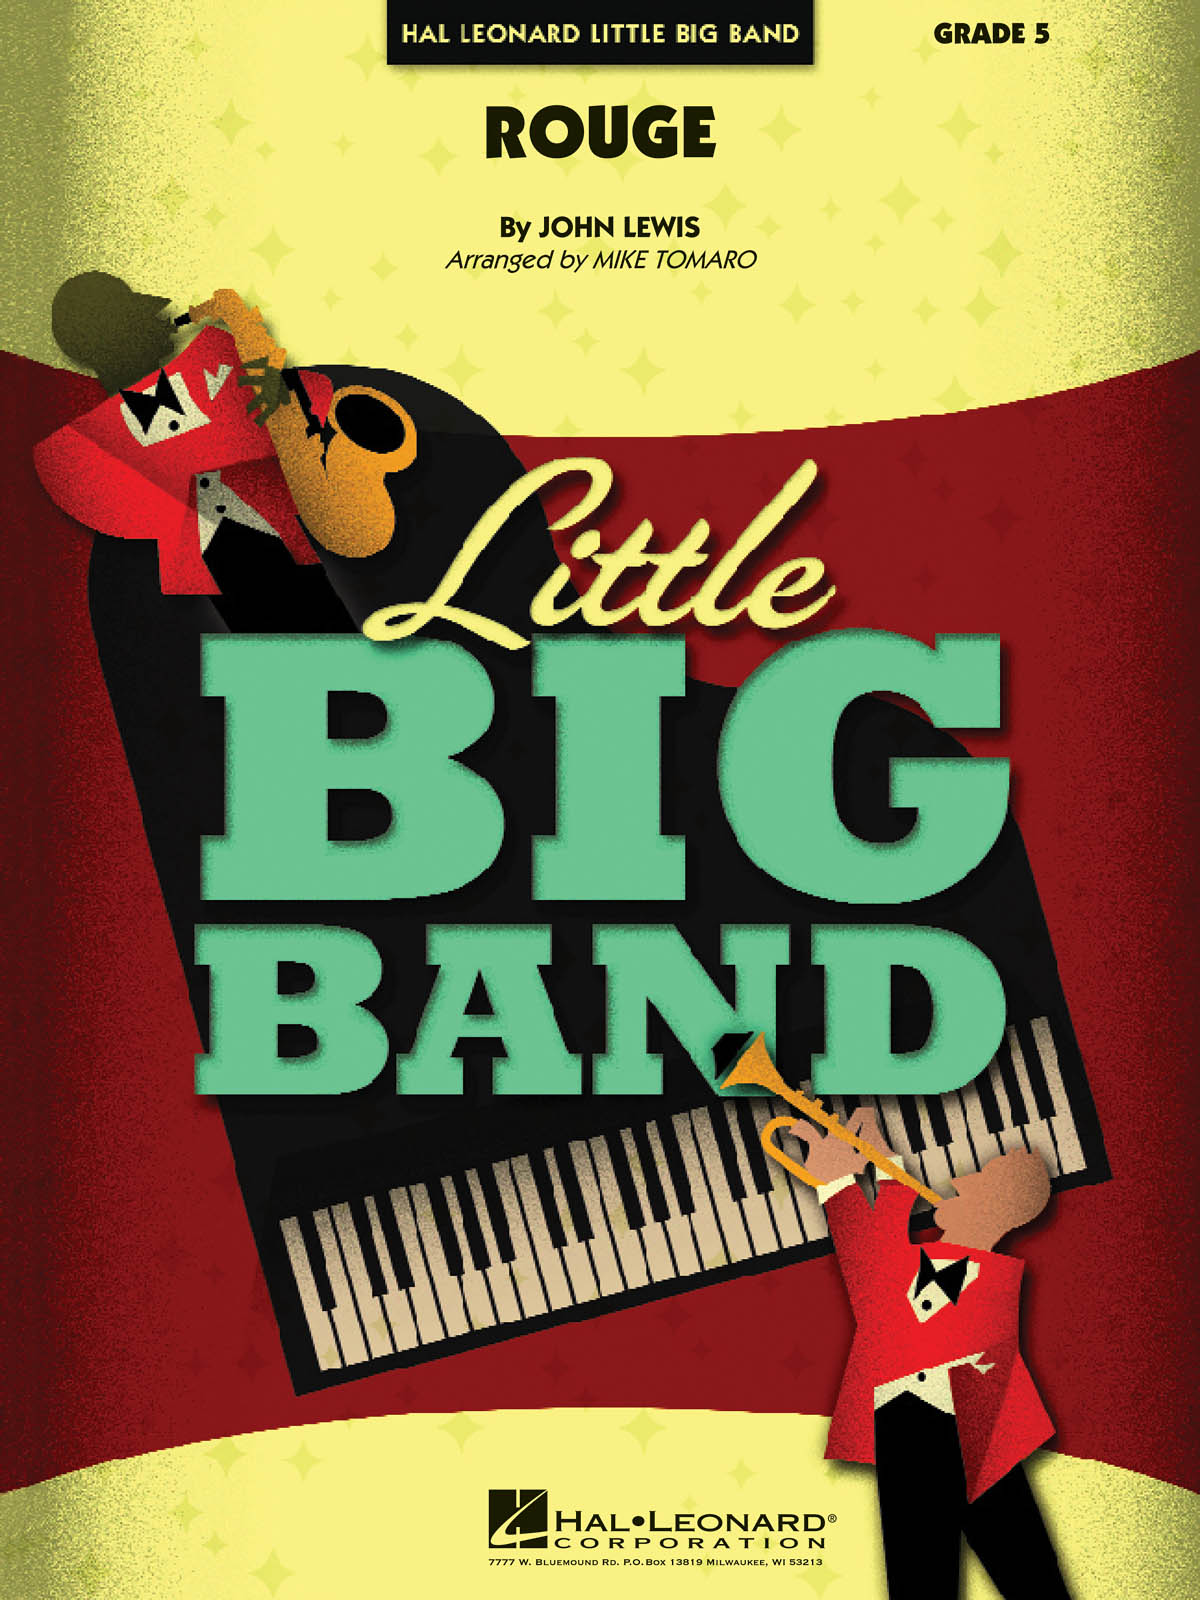 Rouge: Little Big Band